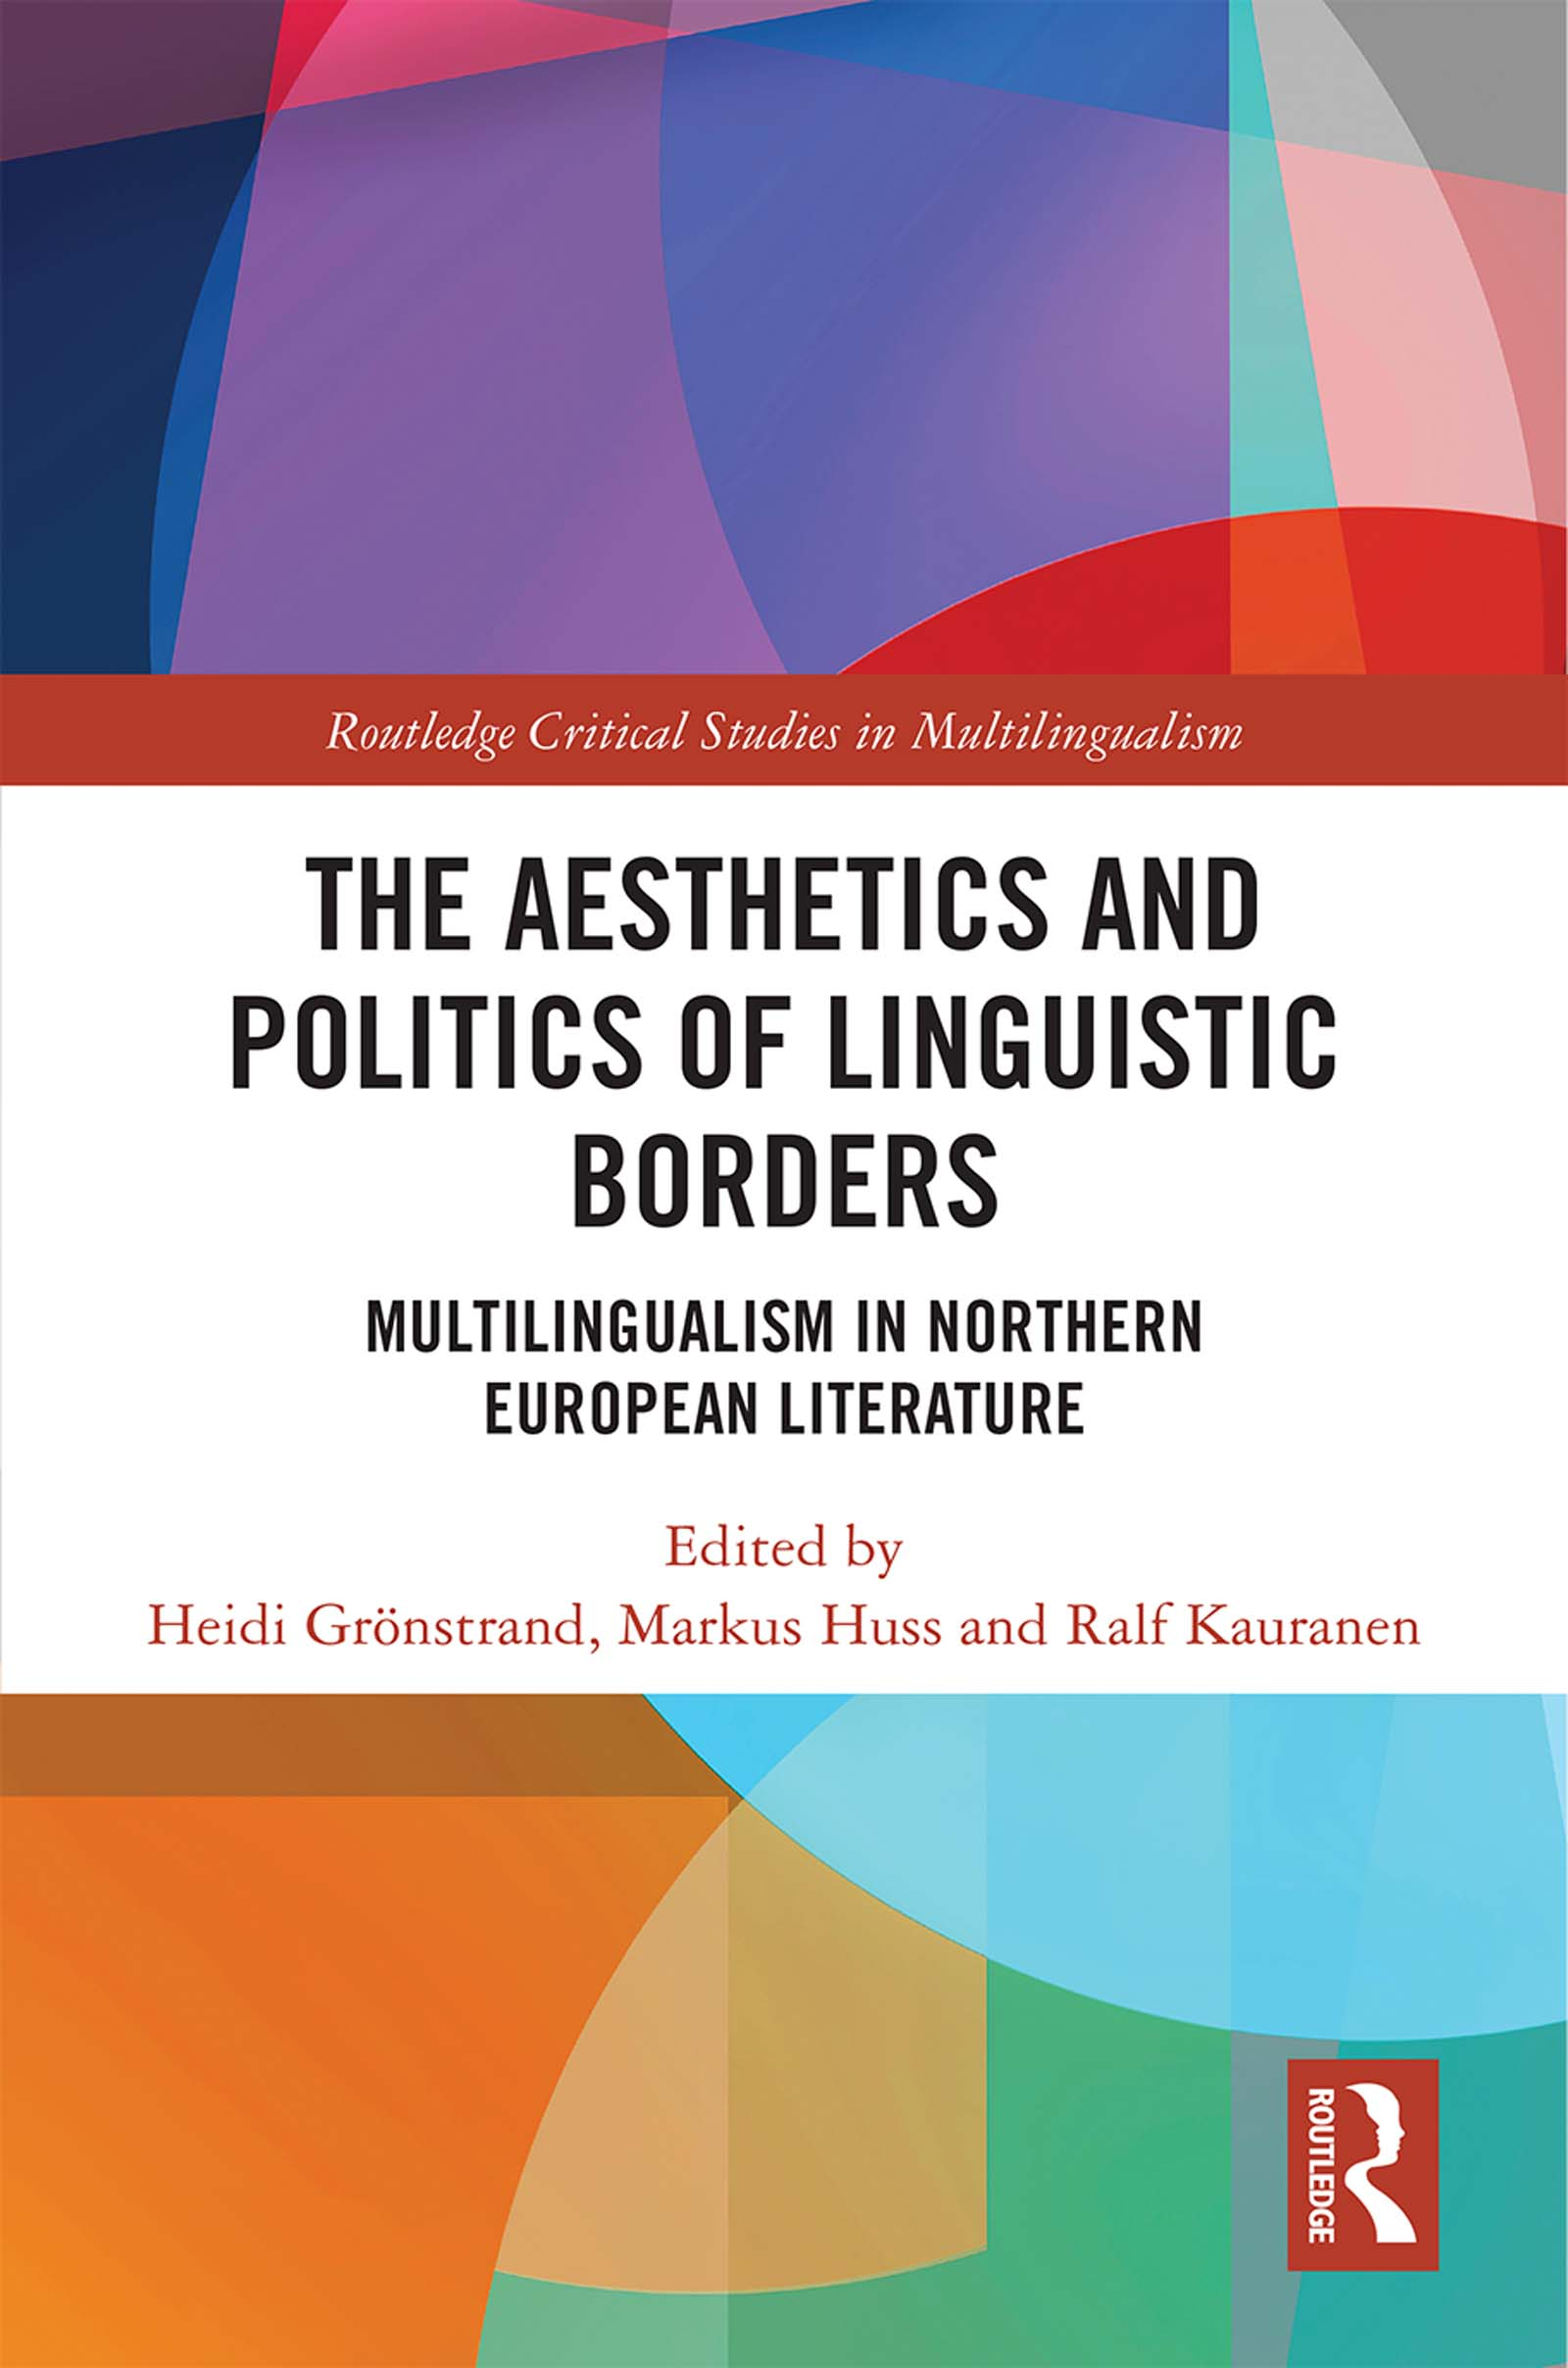 The Aesthetics and Politics of Linguistic Borders: Multilingualism in Northern European Literature book cover